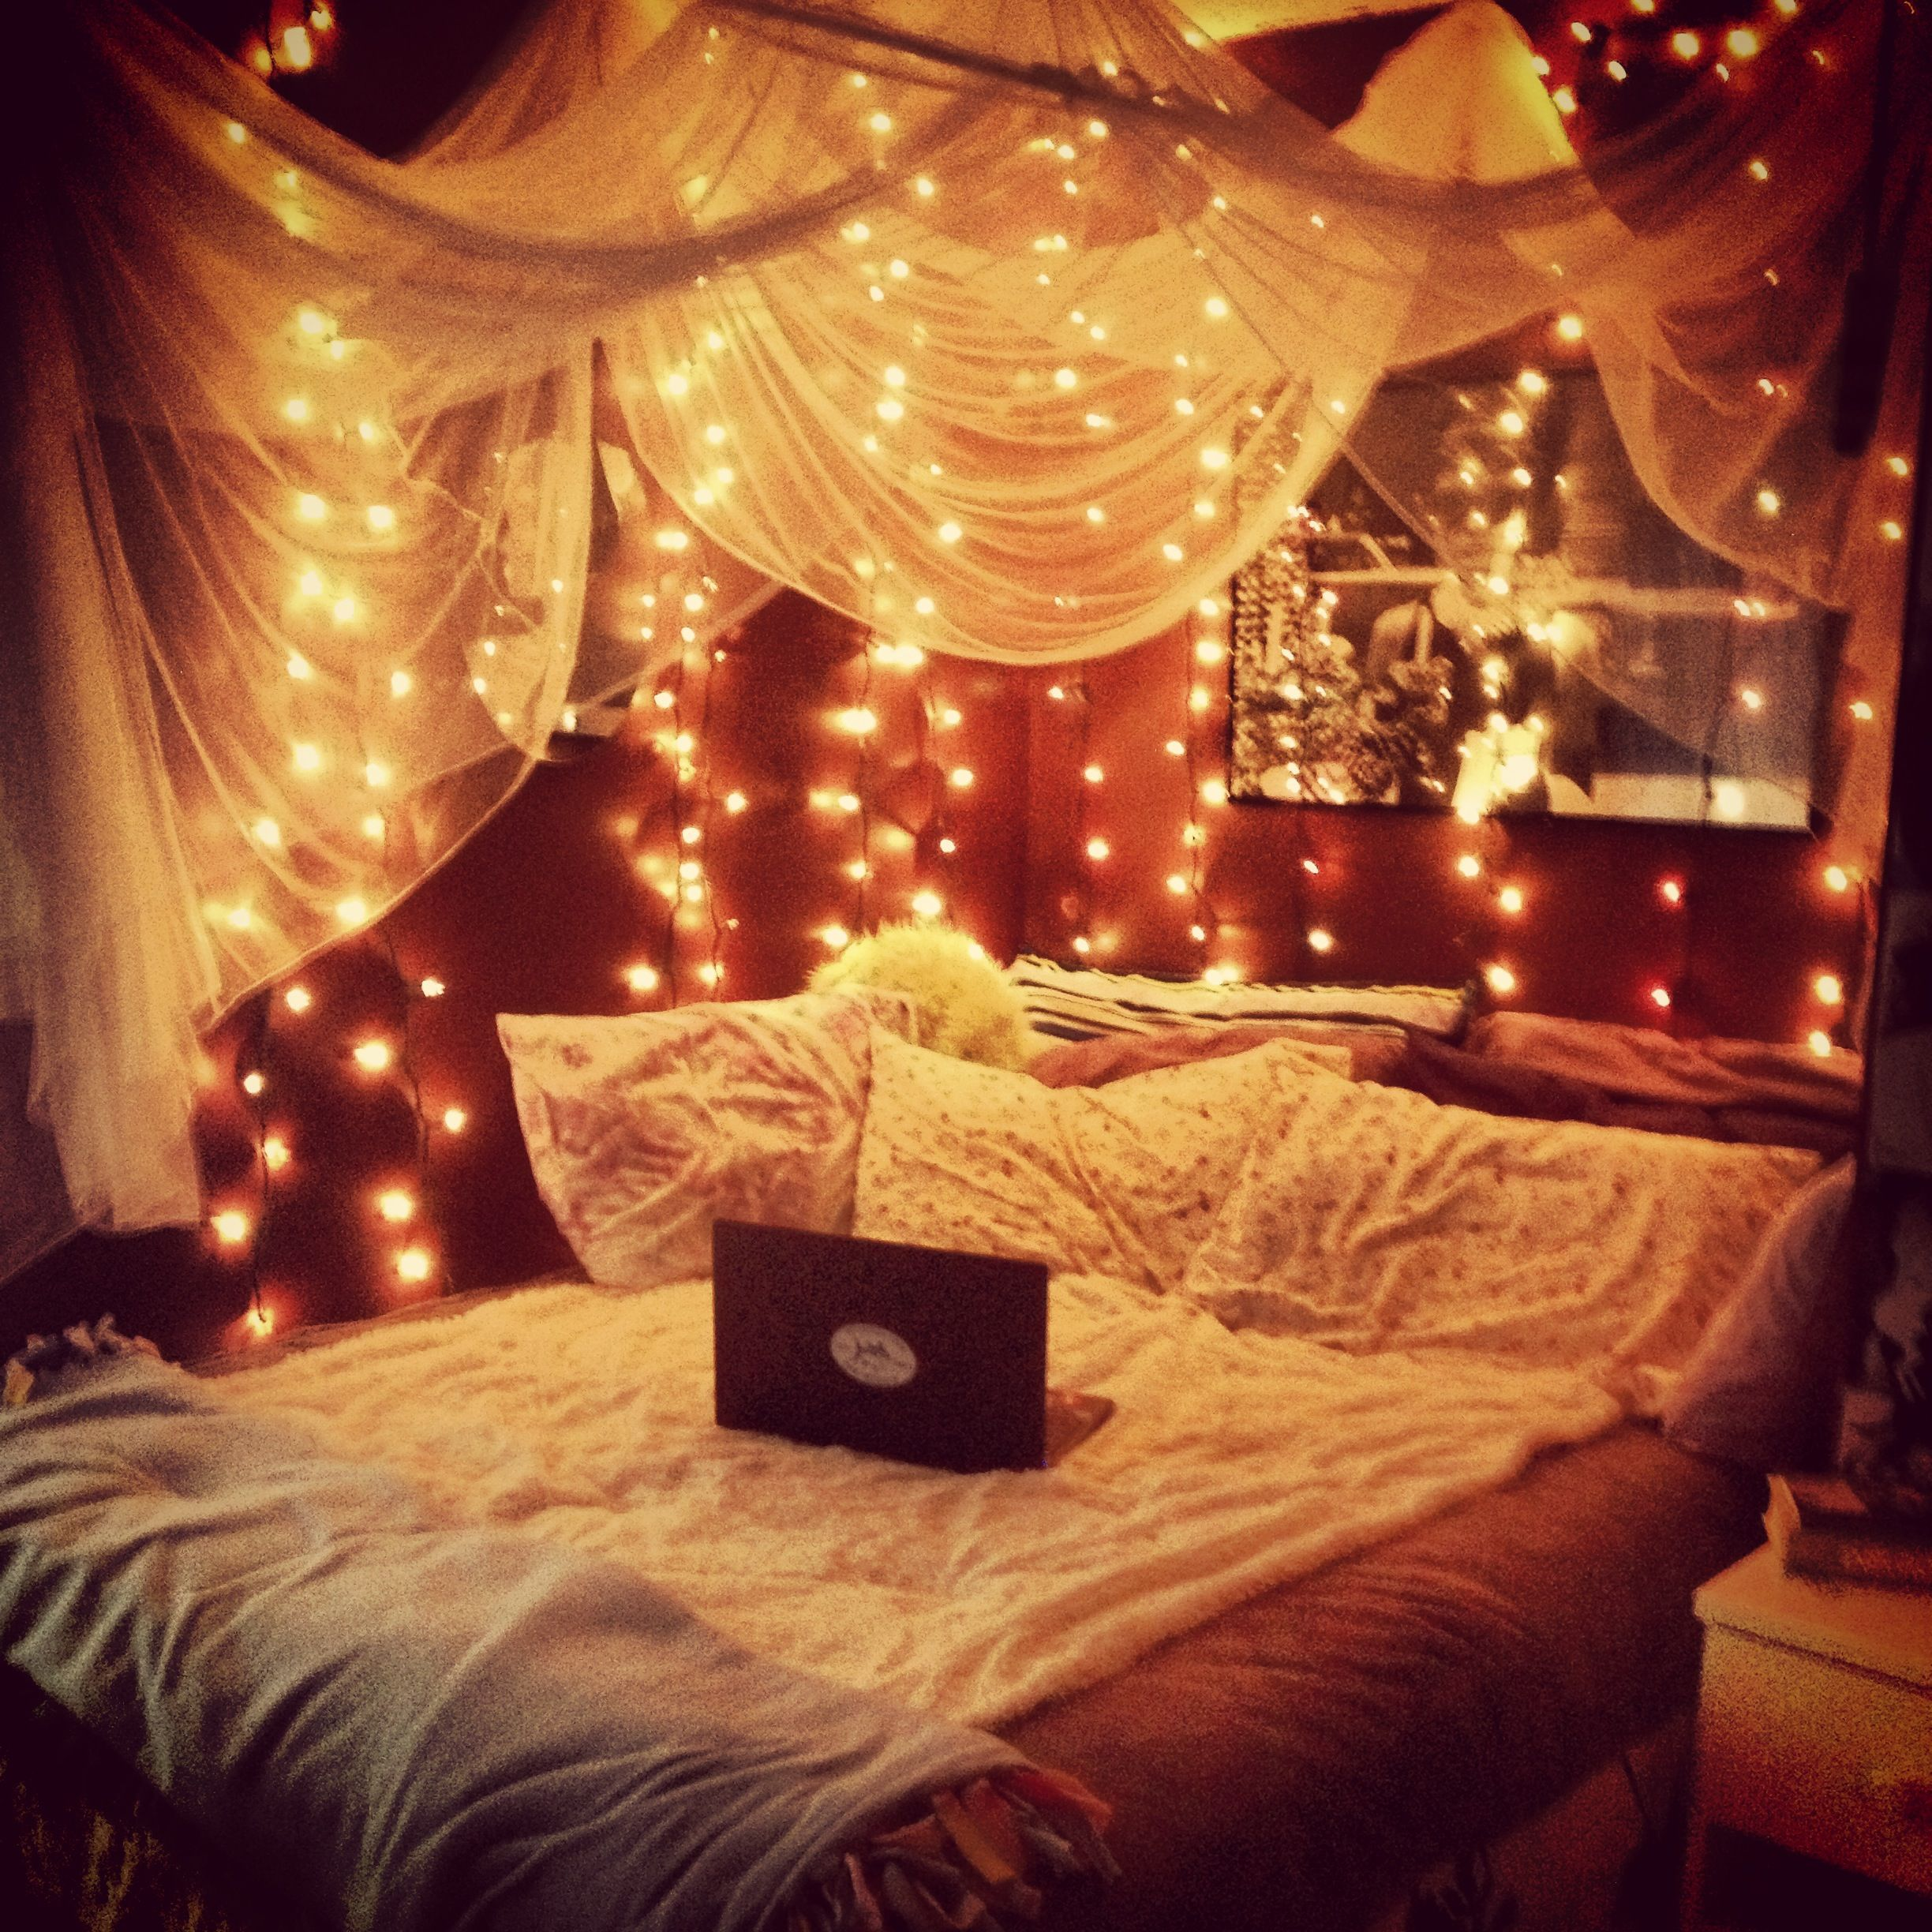 Fairy Lights Around The Bed :) Great Idea For A Little Girls Room,  Comfy,cozy For Those Bedtime Stories. Little Girls Room? This Would Look  Great In My ... Great Pictures